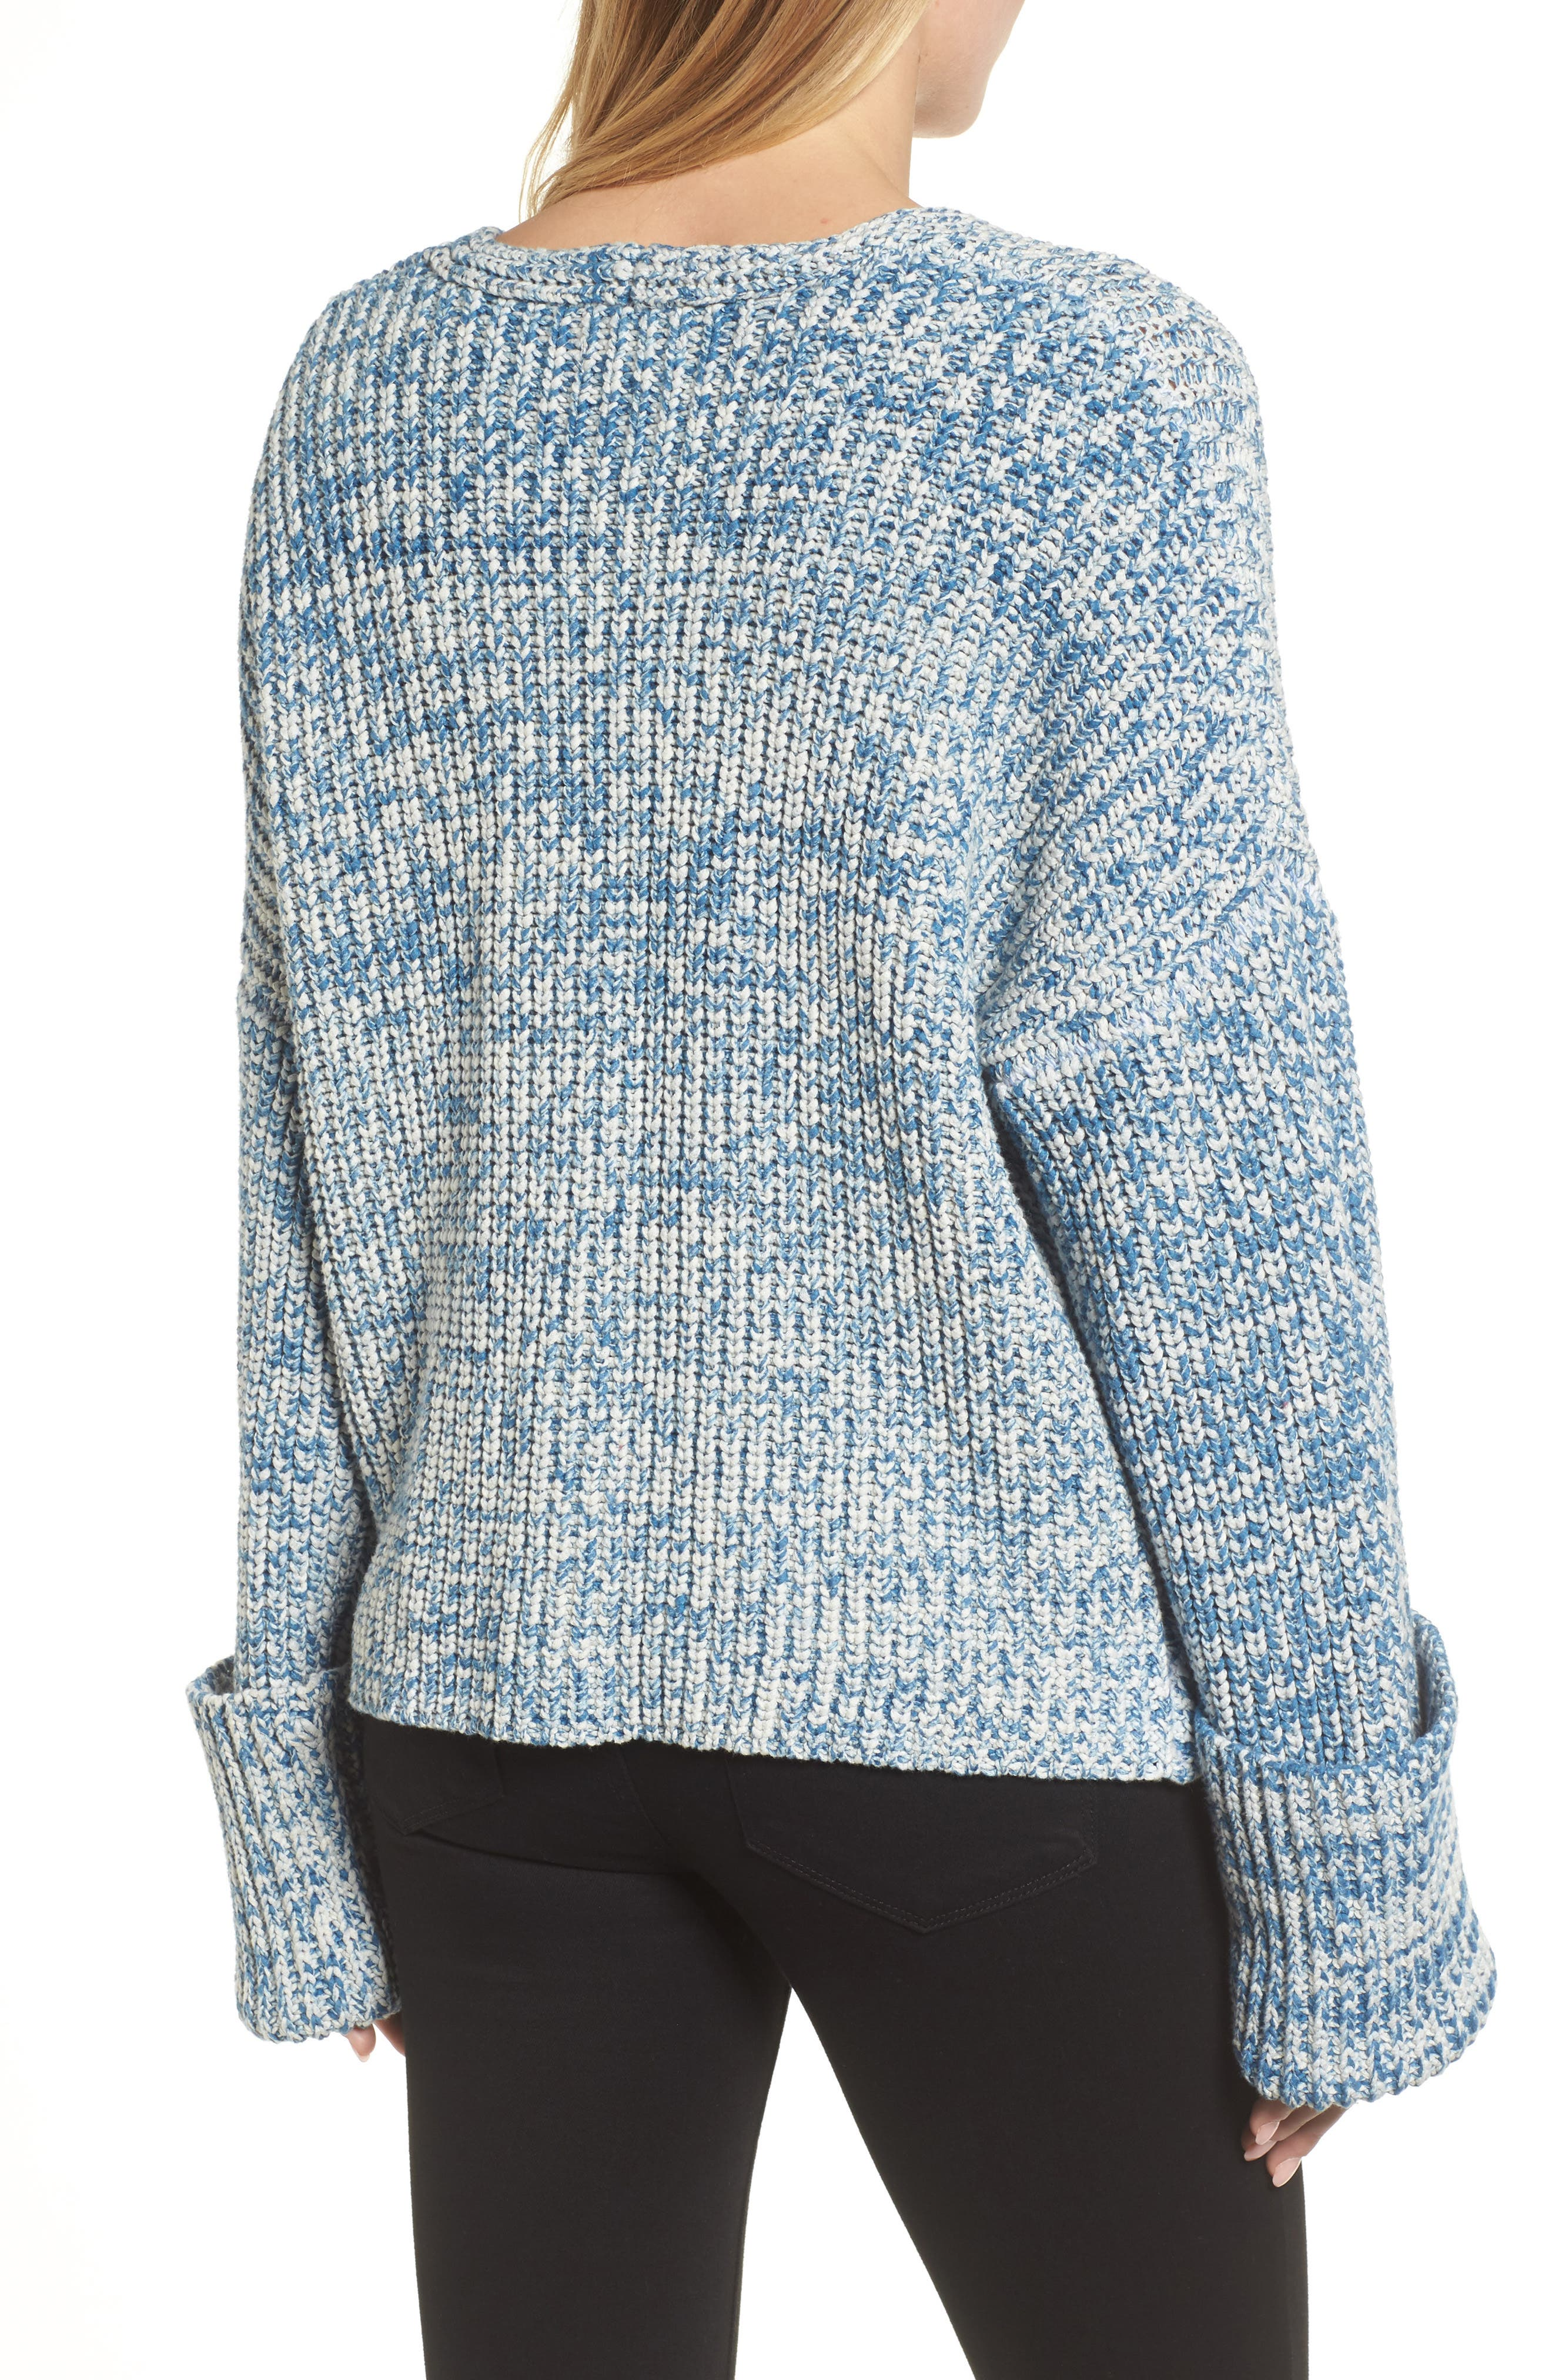 KENNETH COLE NEW YORK,                             Knit V-Neck Sweater,                             Alternate thumbnail 2, color,                             473